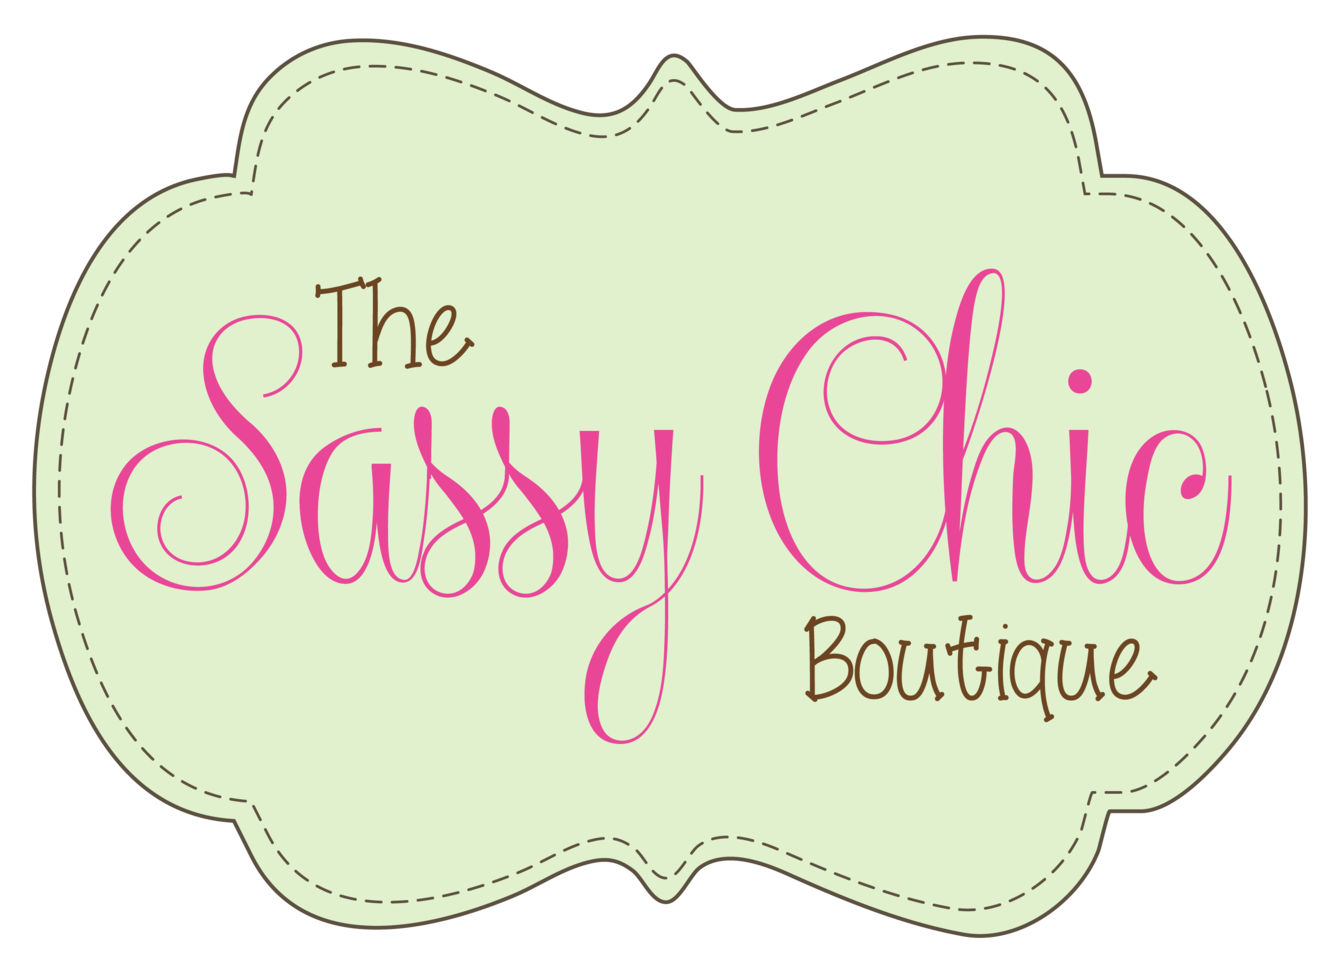 The Sassy Chic Boutique